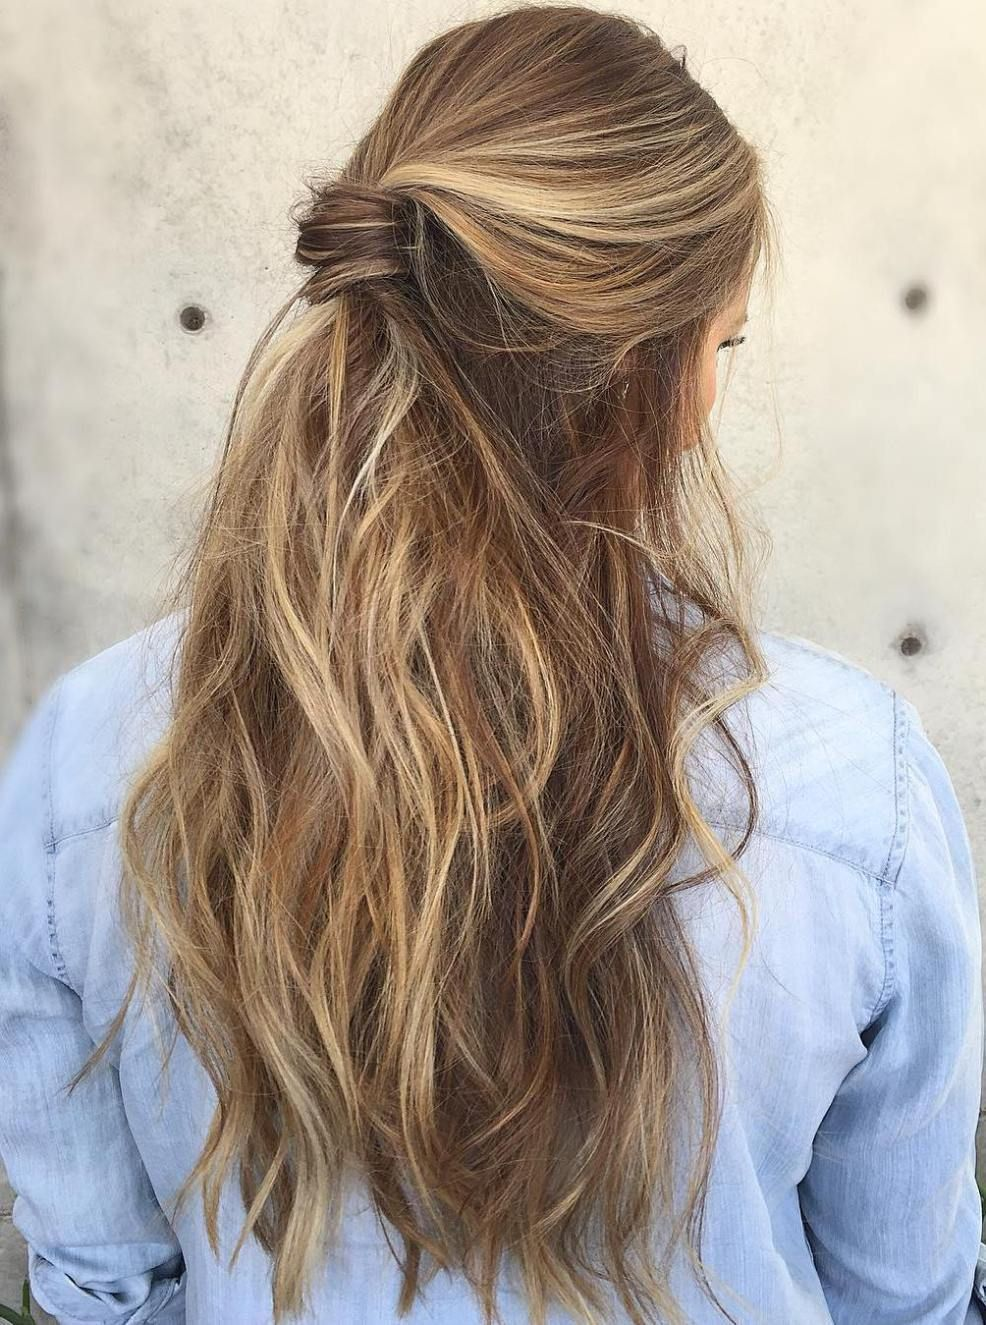 Best hairstyle for thick hair womens hairstyles long curly